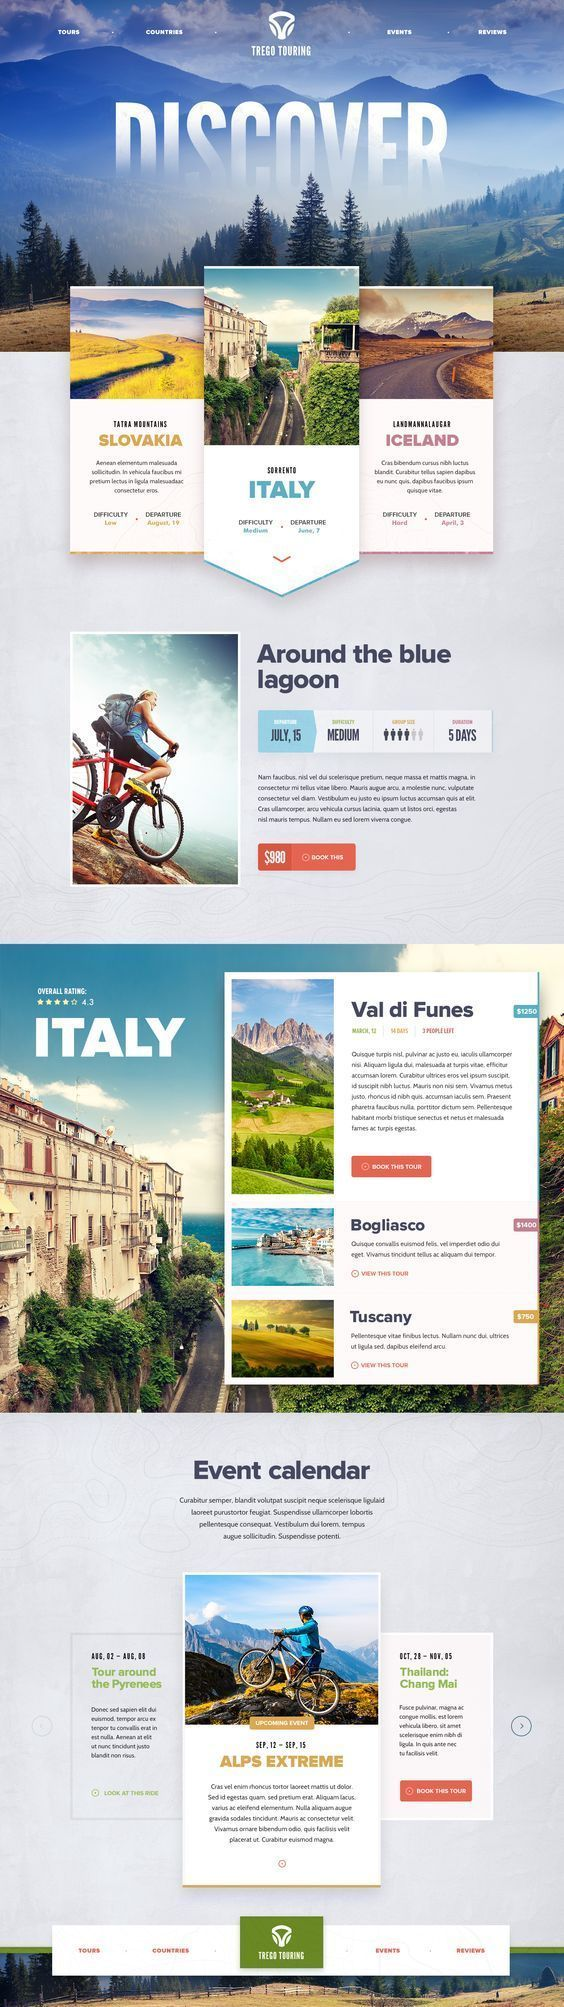 Trego Touring (guided bicycle tours) Ui design concept and visual style by Mike | Creative Mints:. The UX Blog podcast is also available on iTunes.